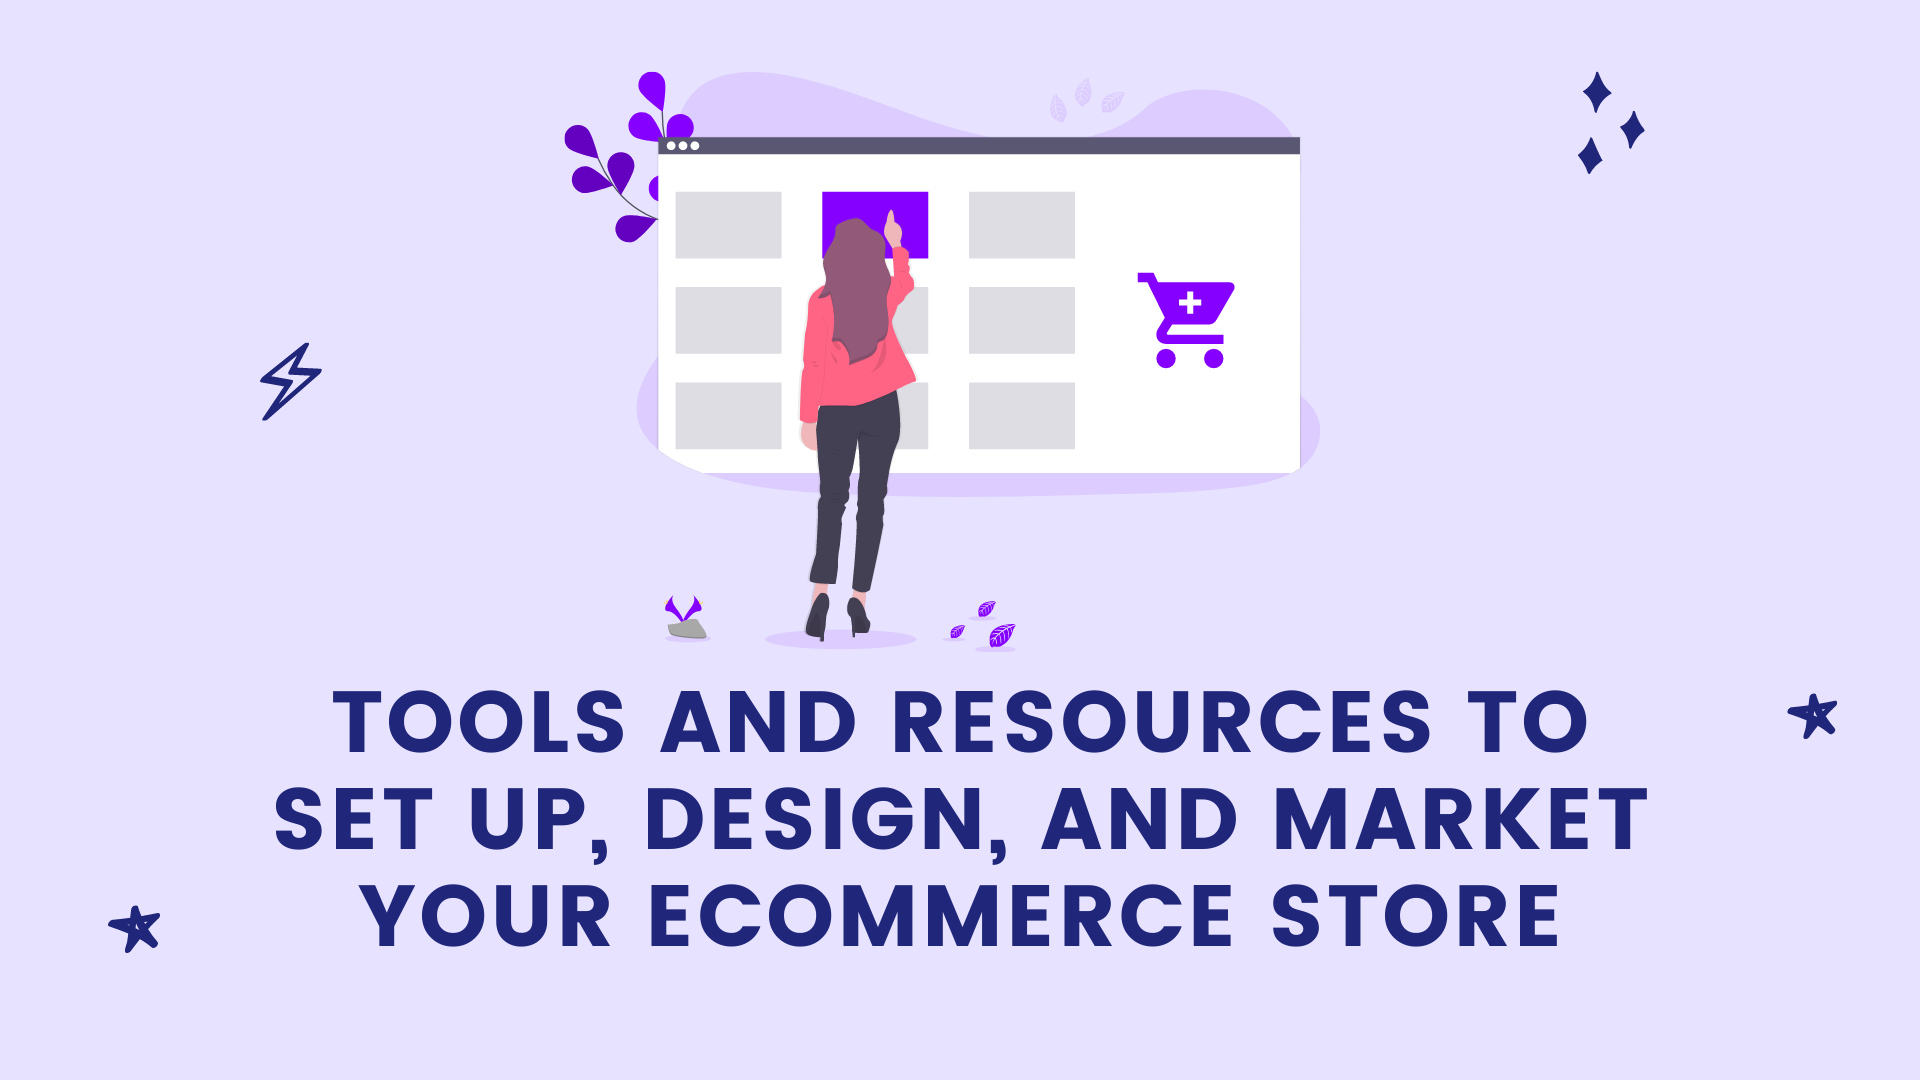 Tools and Resources to Set Up, Design, and Market Your Ecommerce Store